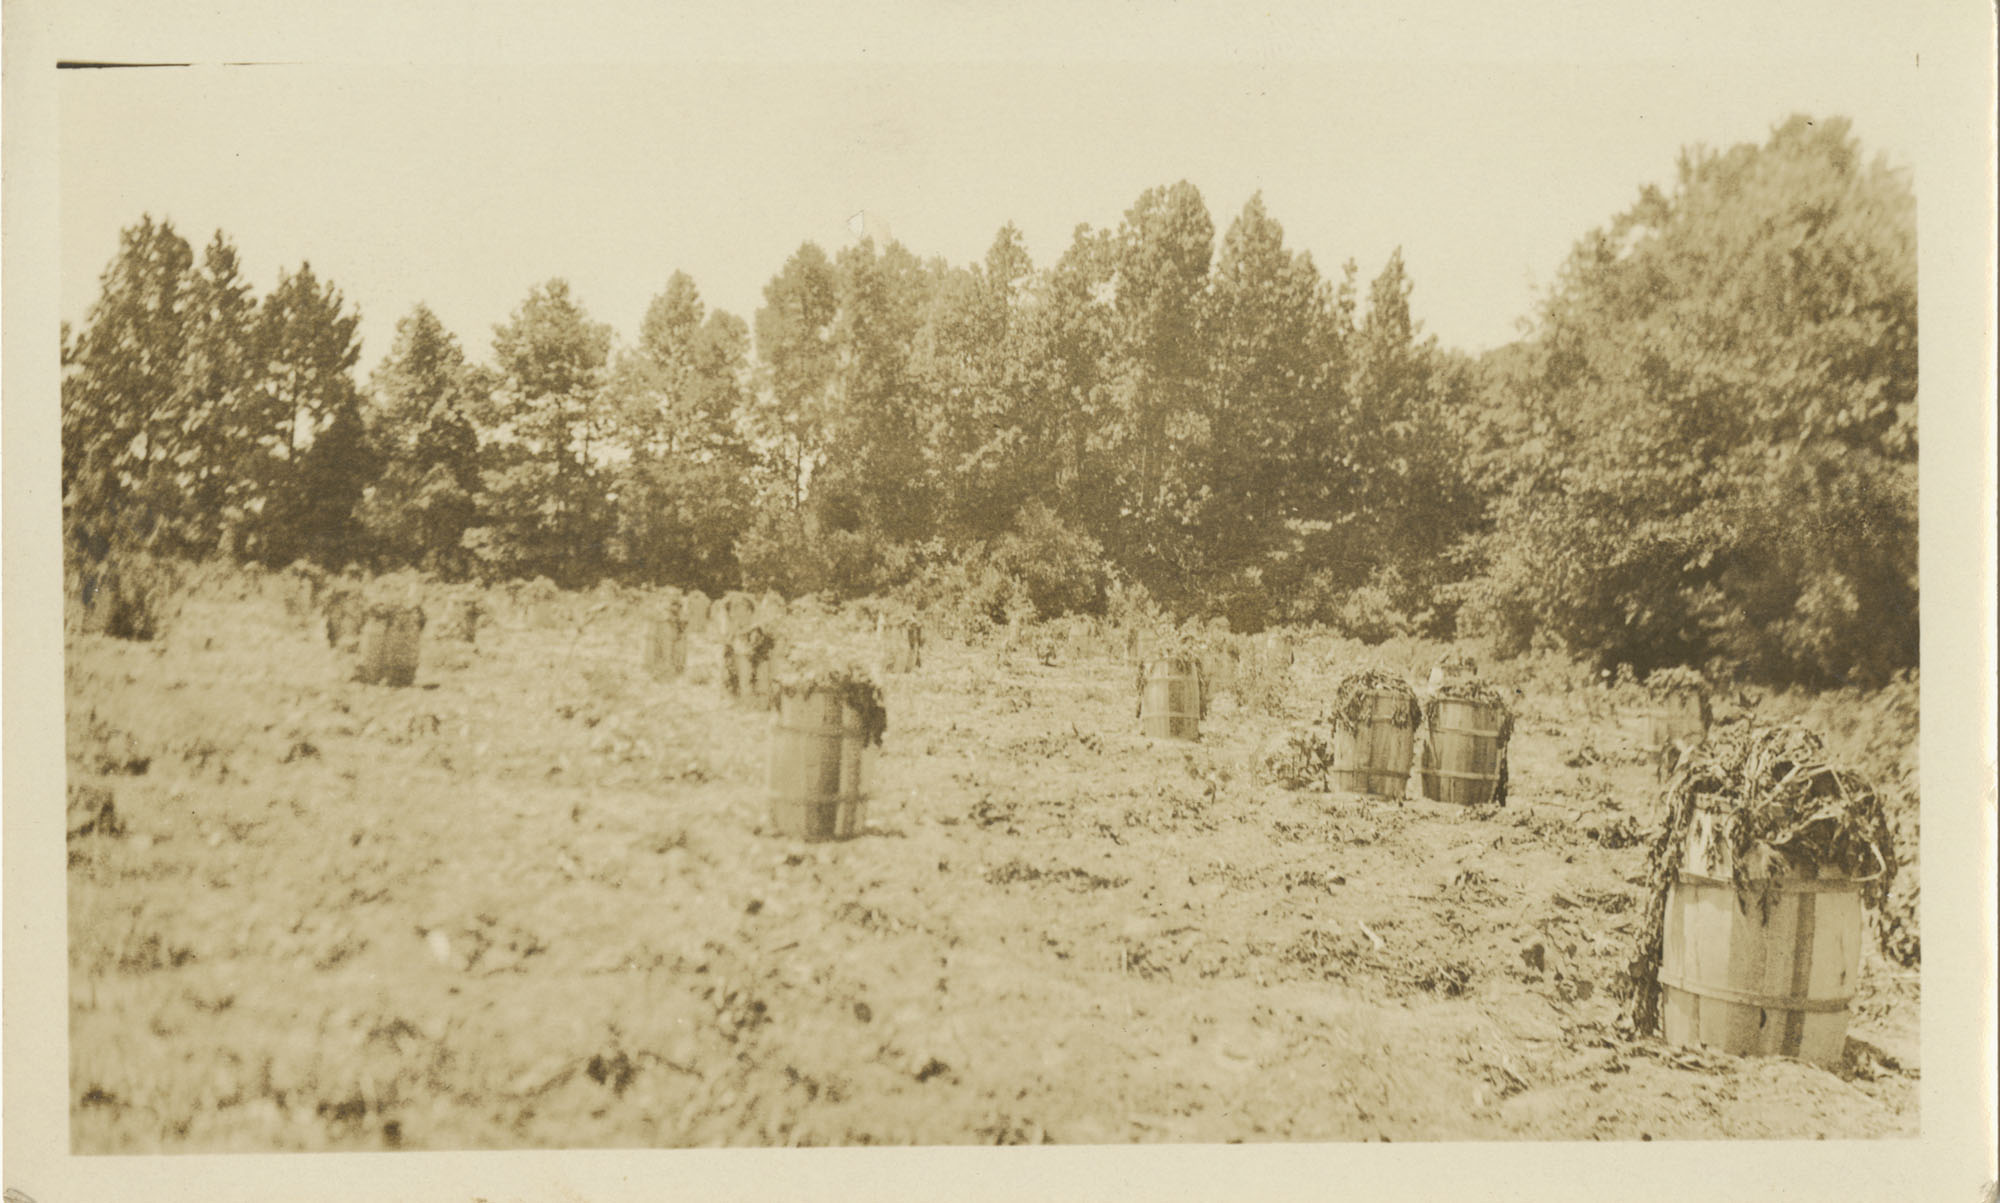 Barrels Full of Harvested Potatoes in the Field